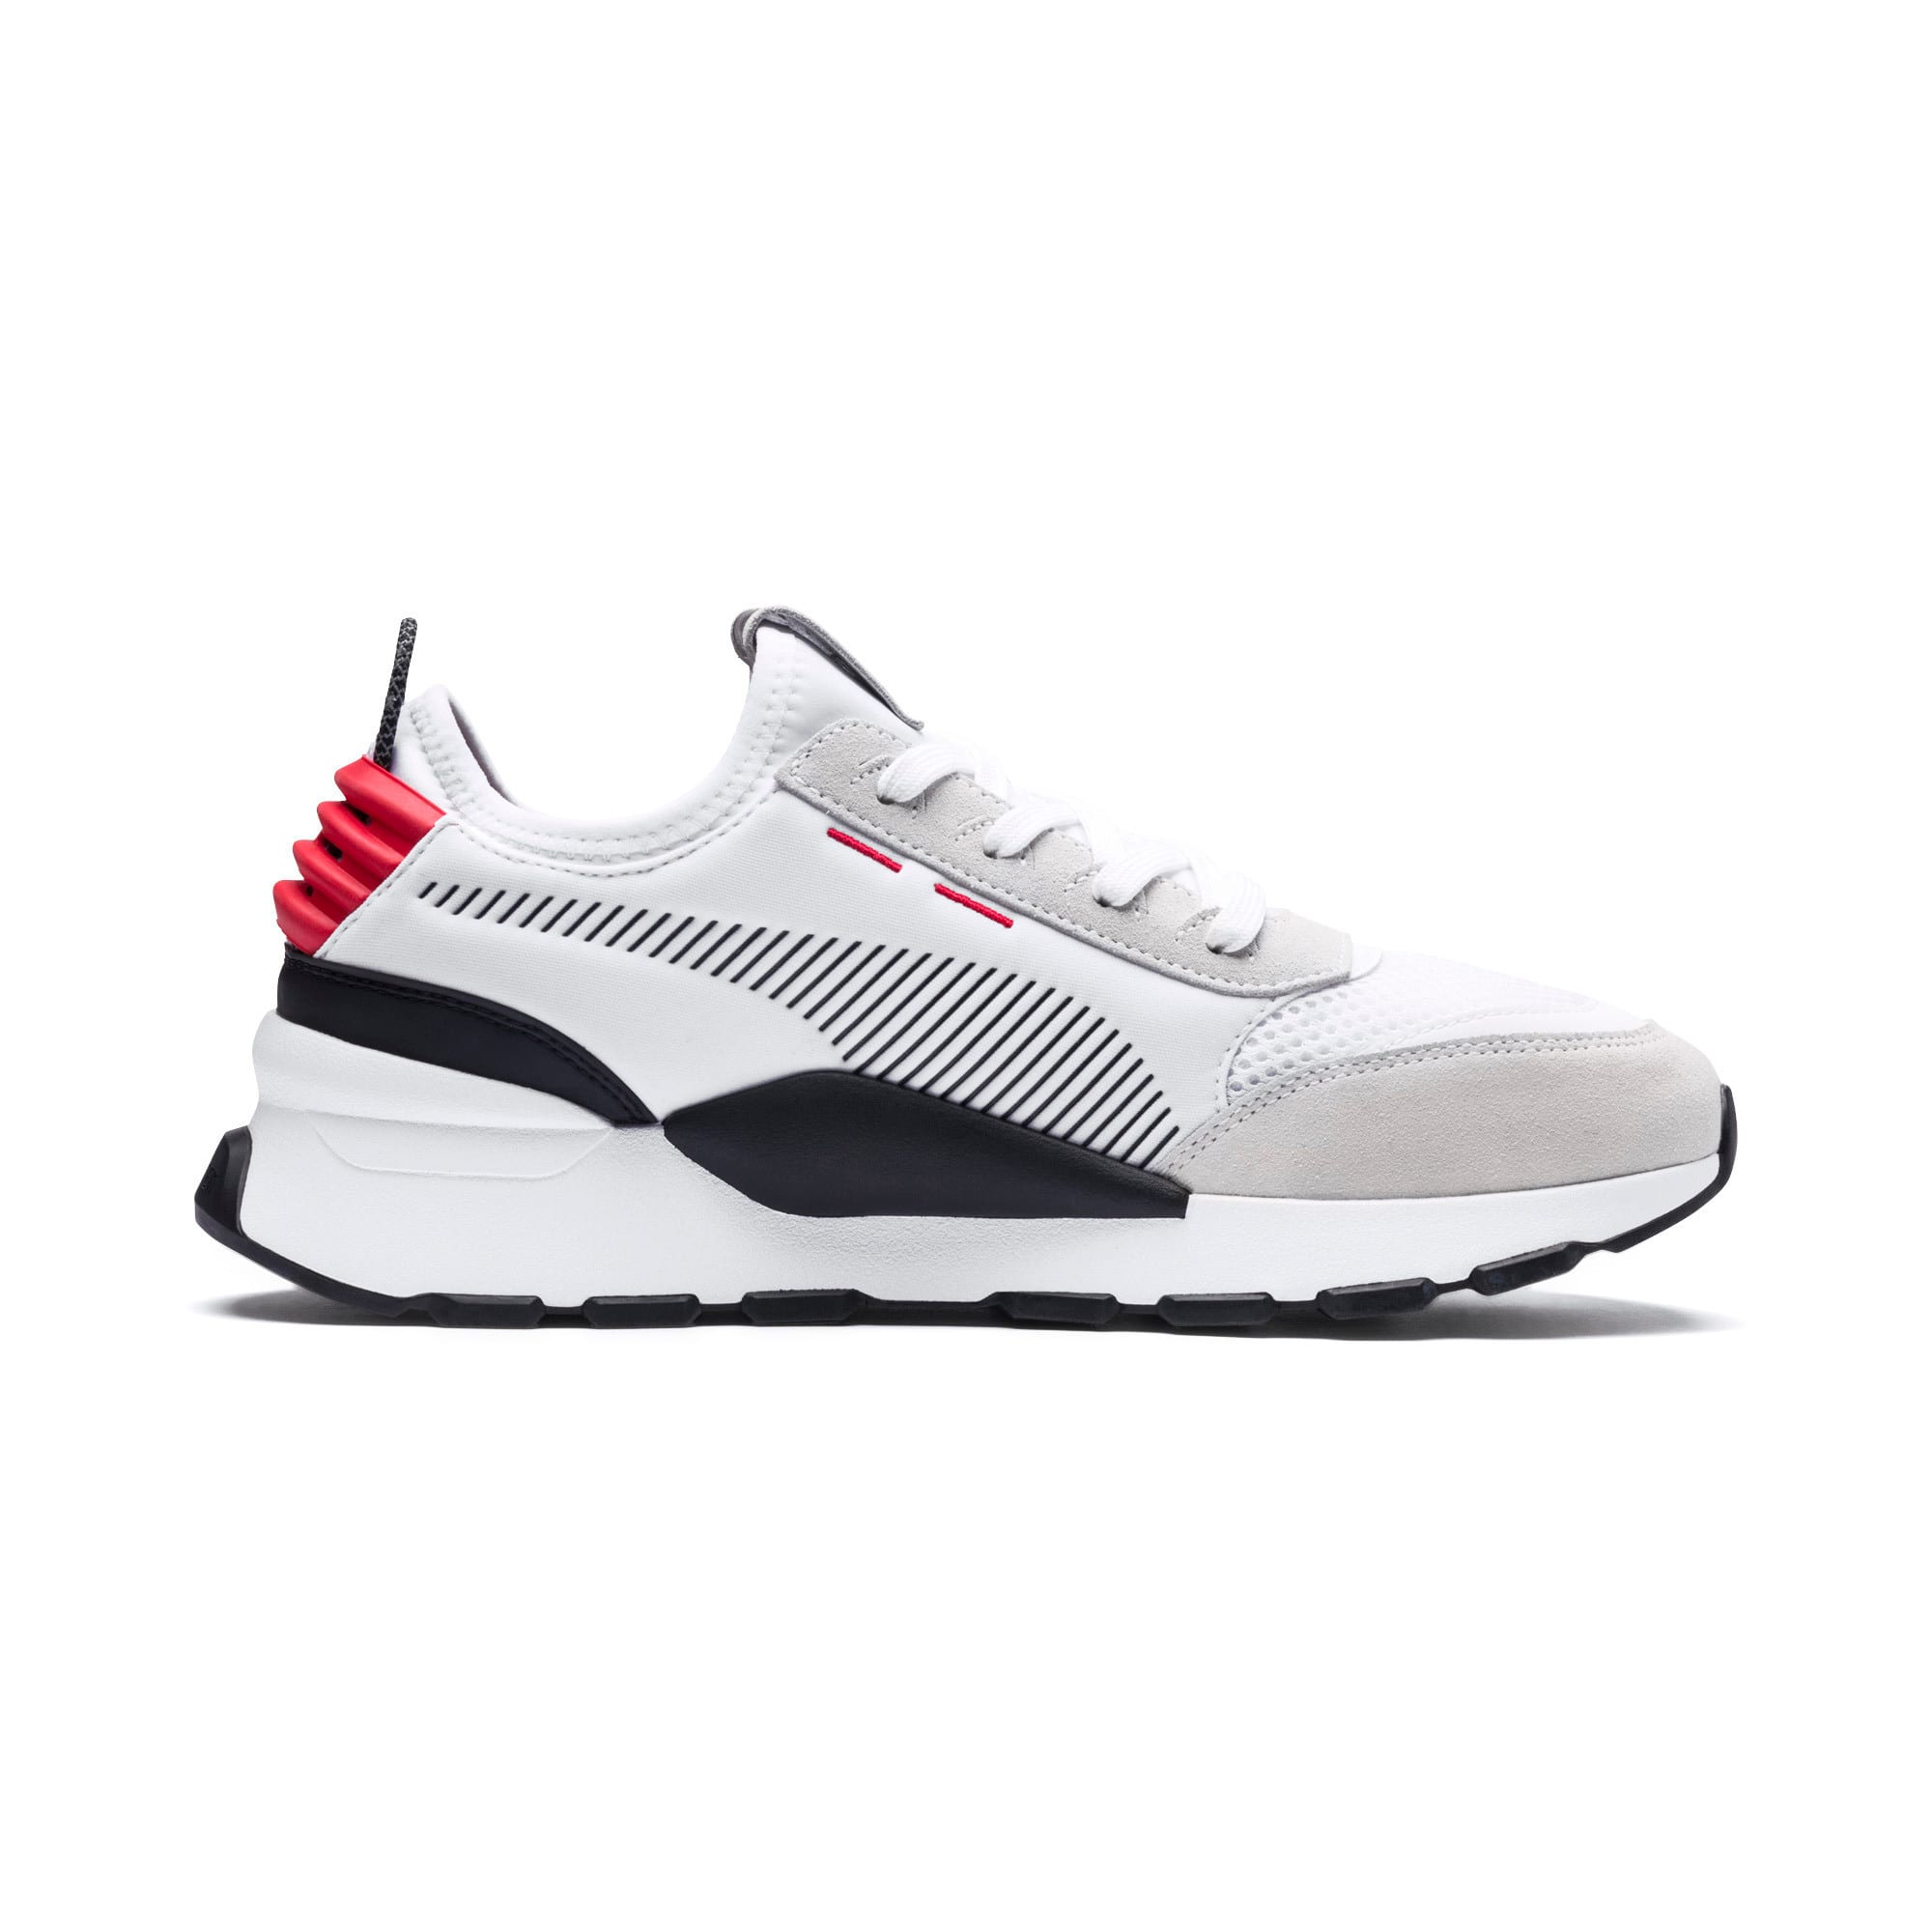 Thumbnail 7 of RS-O Winter Inj Toys Men's Sneakers, Puma White-High Risk Red, medium